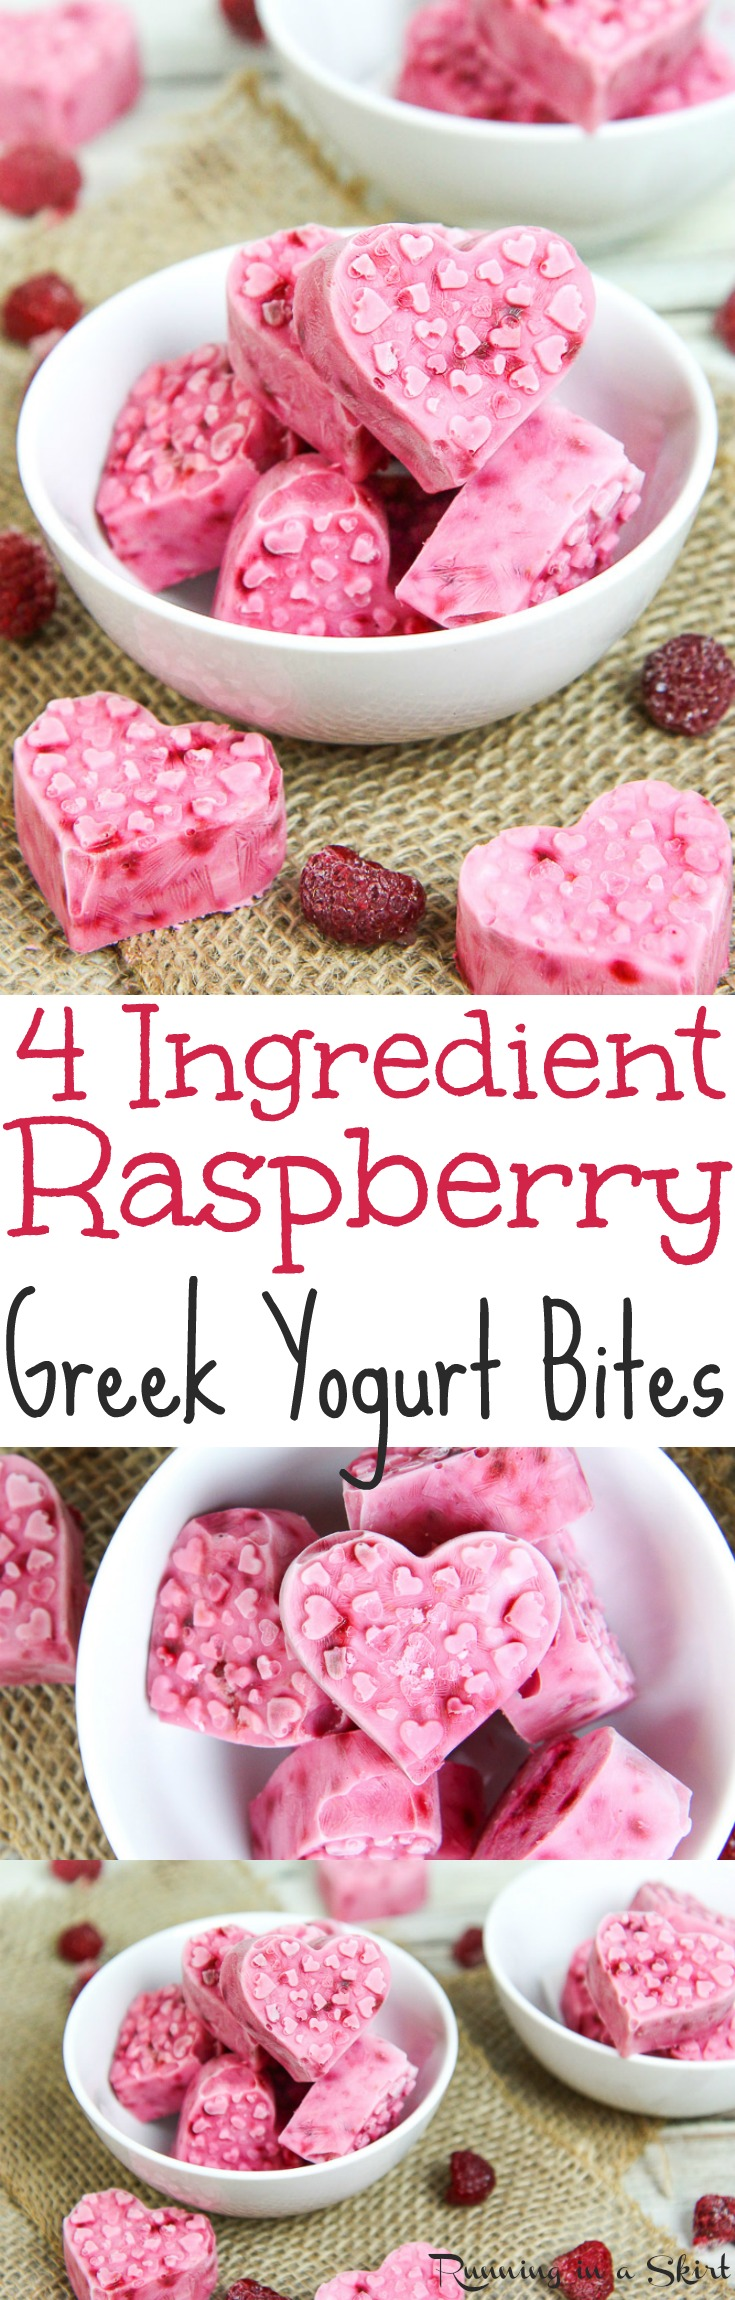 4 Ingredient Healthy, Frozen Raspberry Greek Yogurt Bites.  The perfect fruit filled, gluten free, vegetarian low carb snack ideas for Valentine's Day.  These easy, homemade and cute heart shaped DIY treats for kids or for adults only take 10 minutes to make.  / Running in a Skirt via @juliewunder